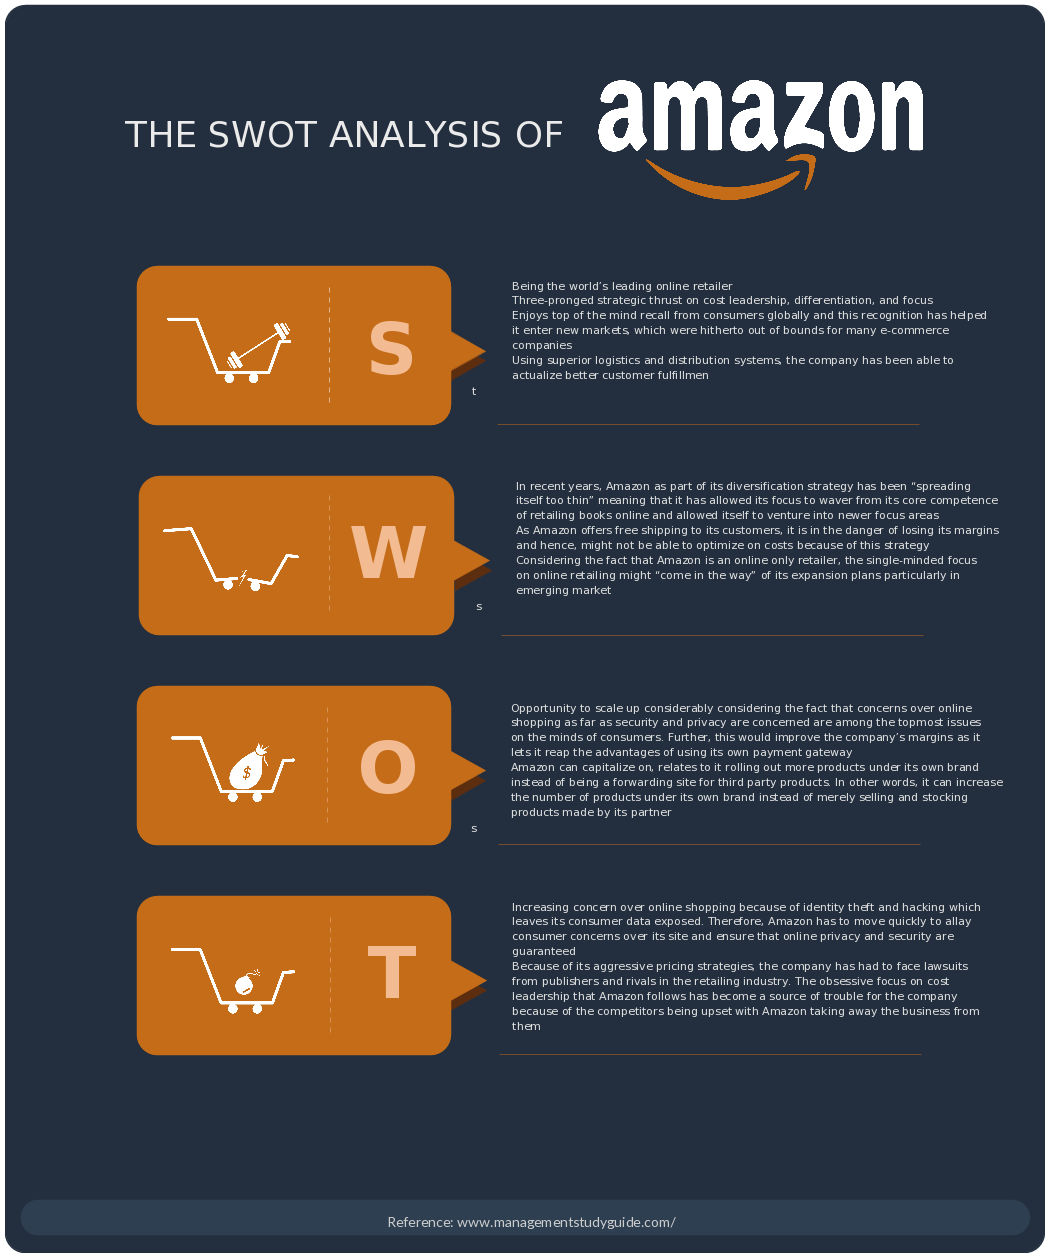 swot analysis diagram of amazon learn about the strengths weaknesses opportunities and threats [ 1050 x 1260 Pixel ]